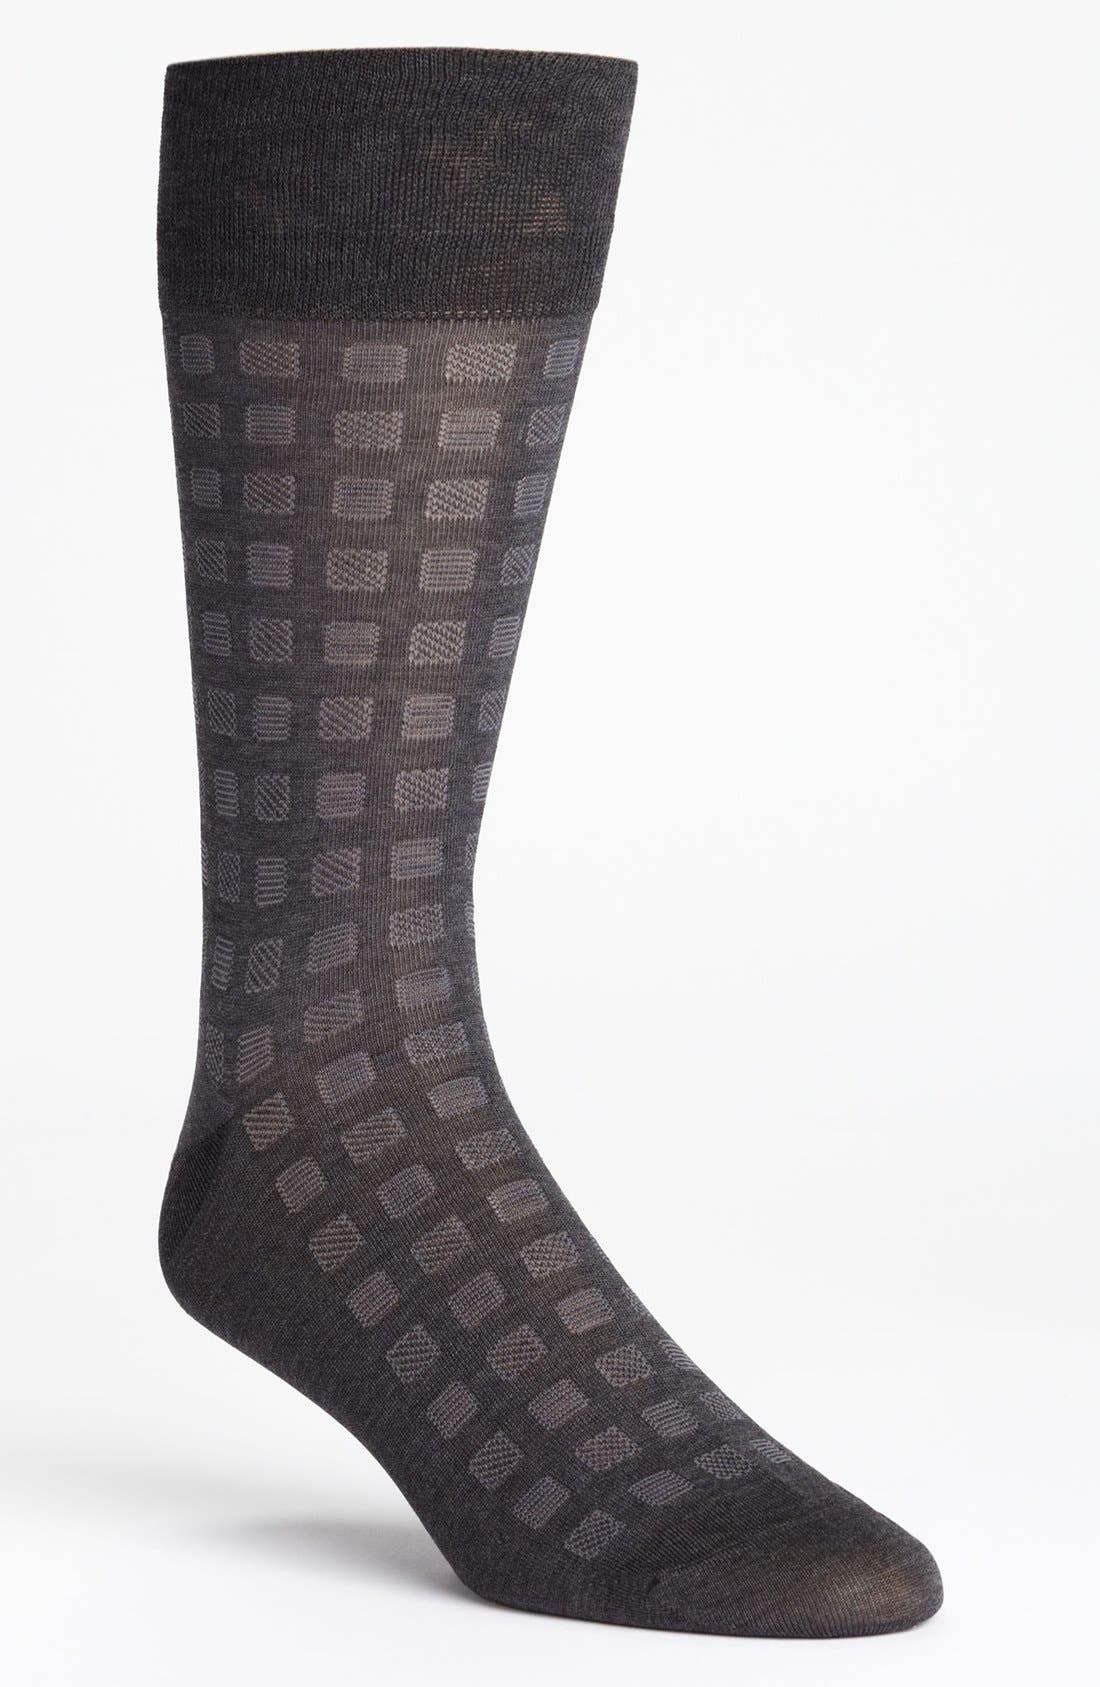 Alternate Image 1 Selected - John W. Nordstrom® Geometric Print Socks